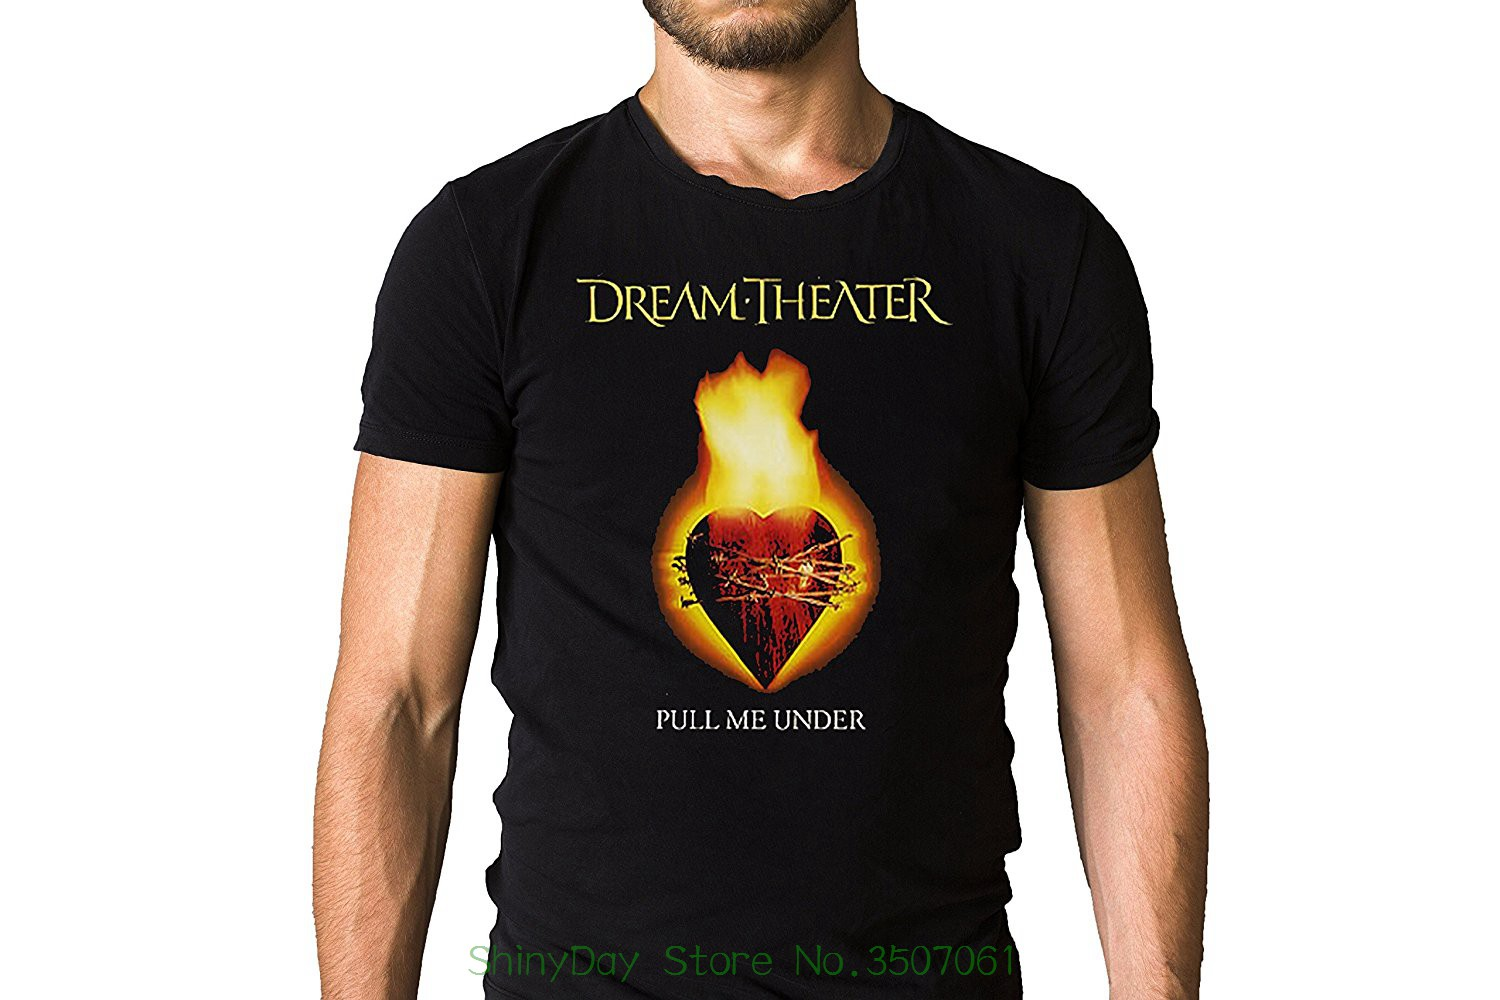 Print T-shirt Mens Summer Dream Theater Images And Words 1992 Pull Me Under Burning Heart Album Inspired Black T-shirt